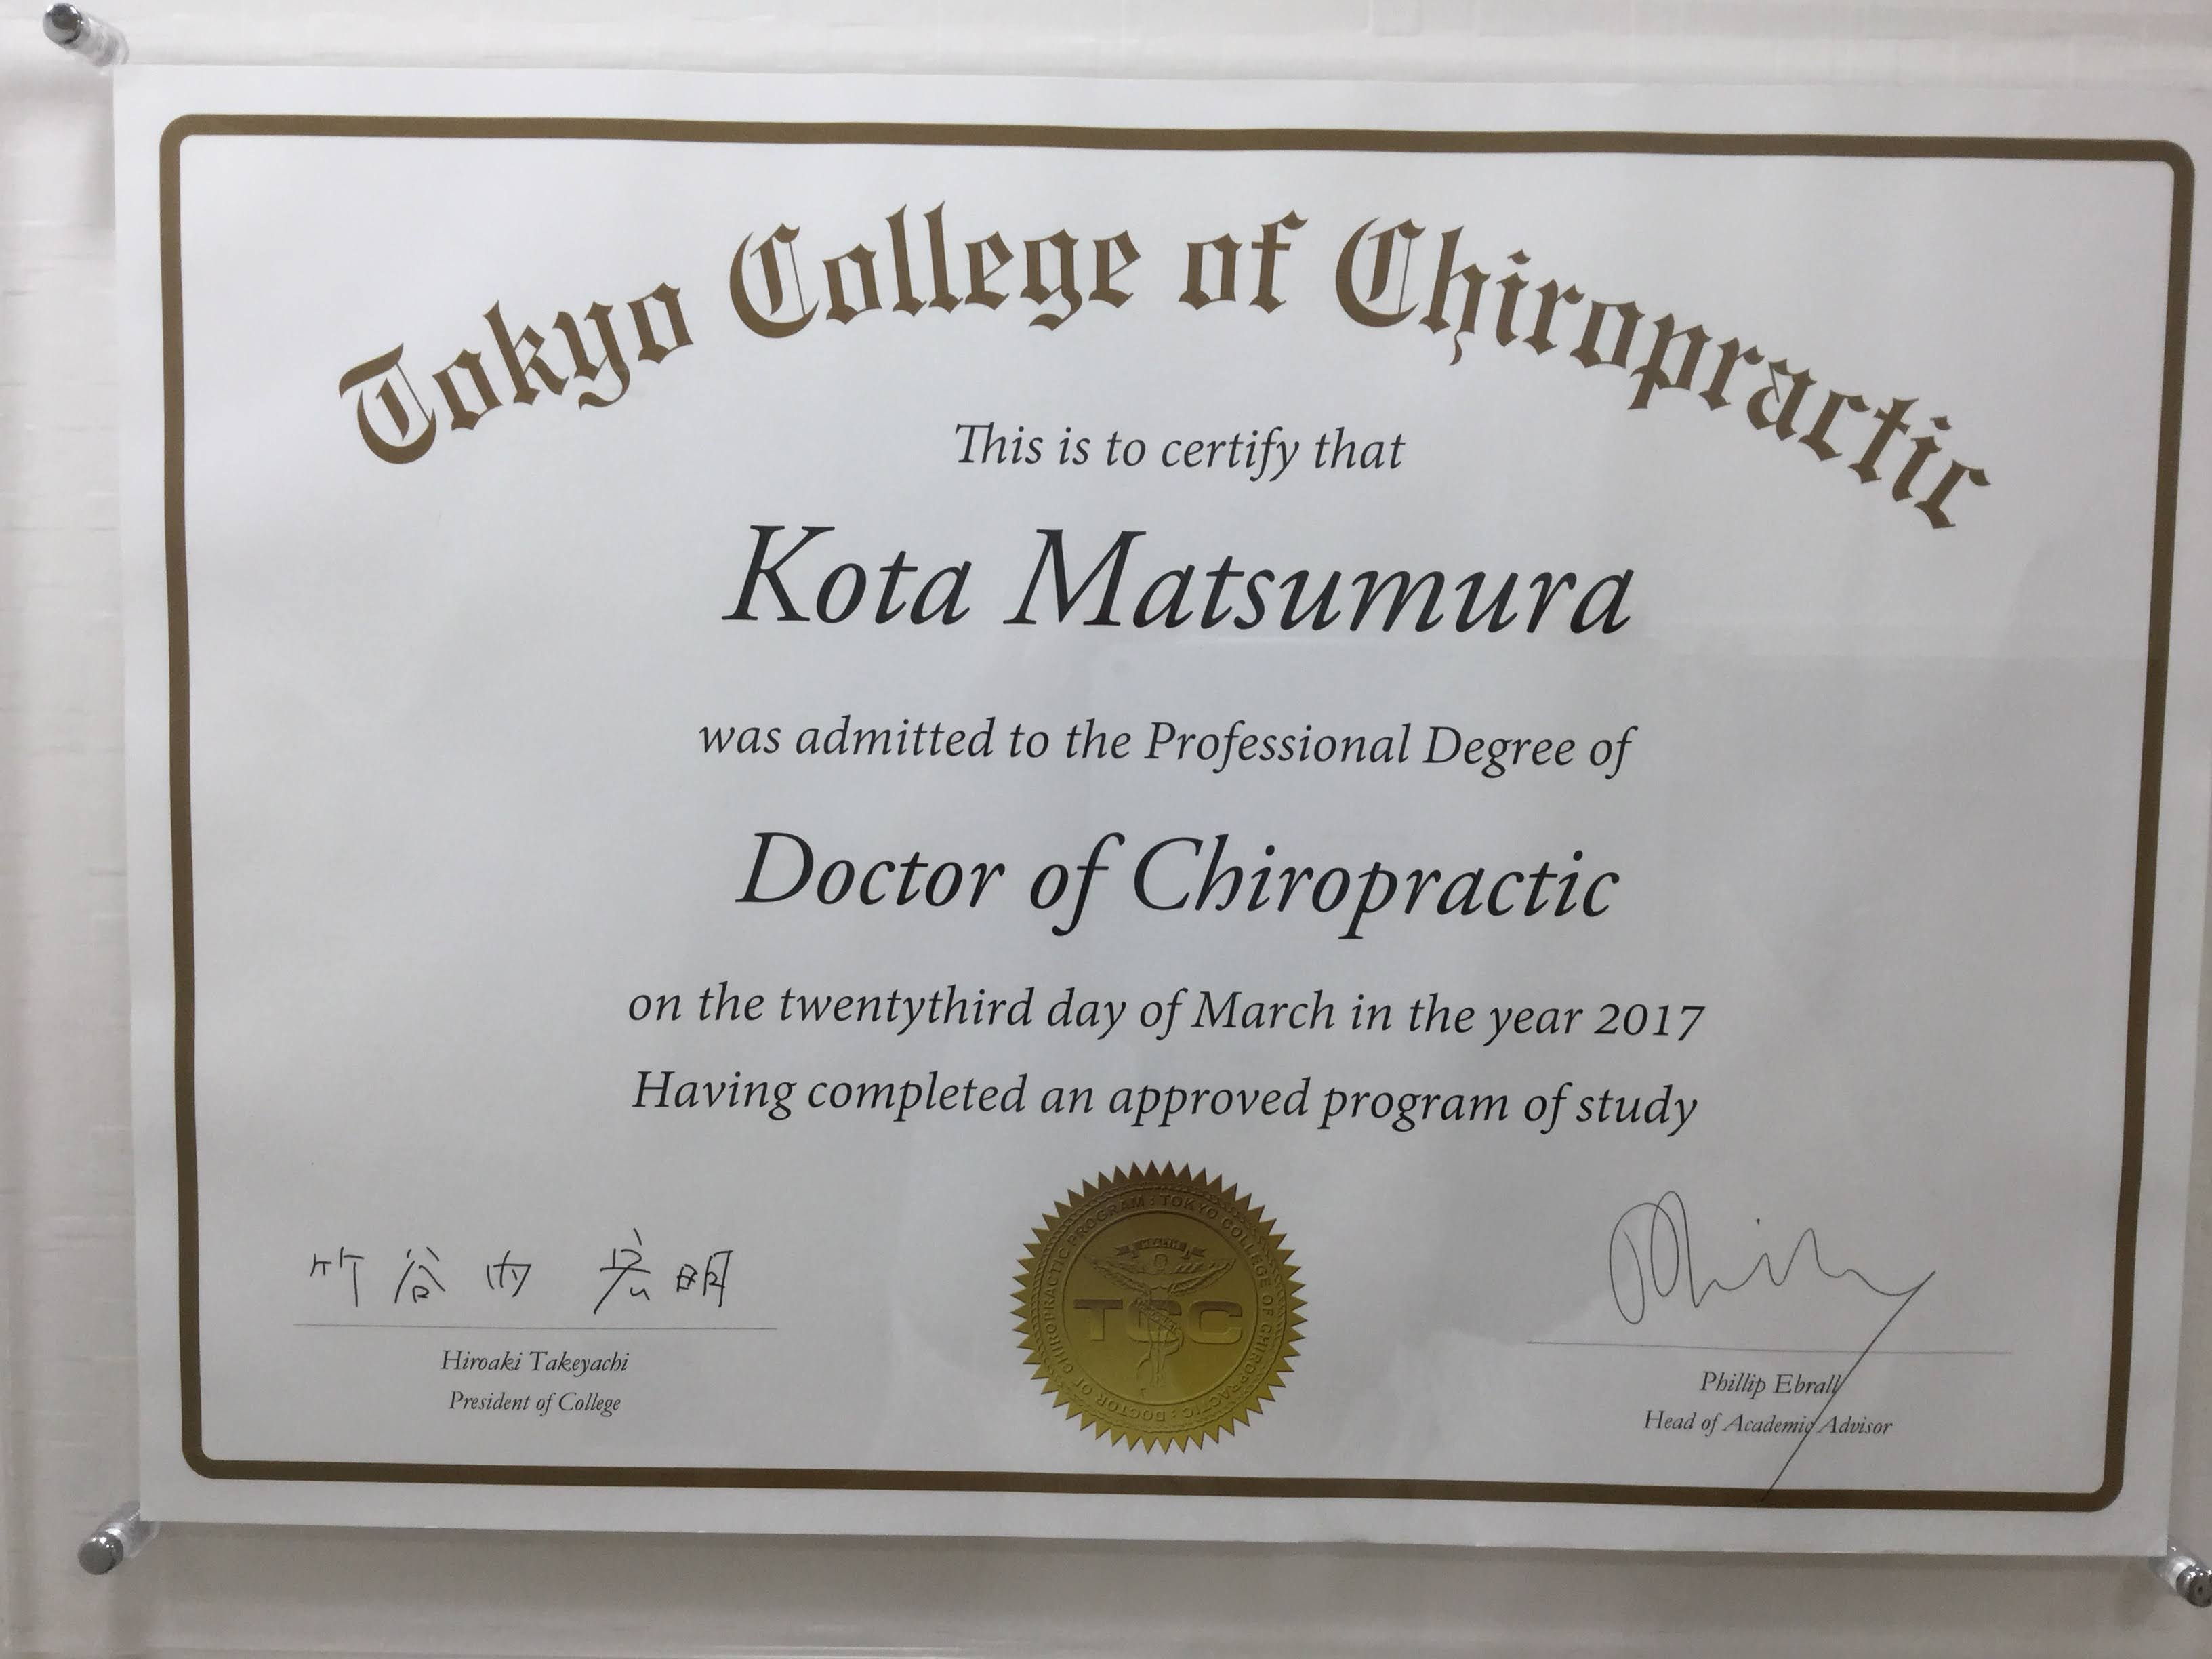 Doctor of Chiropractic 証明書